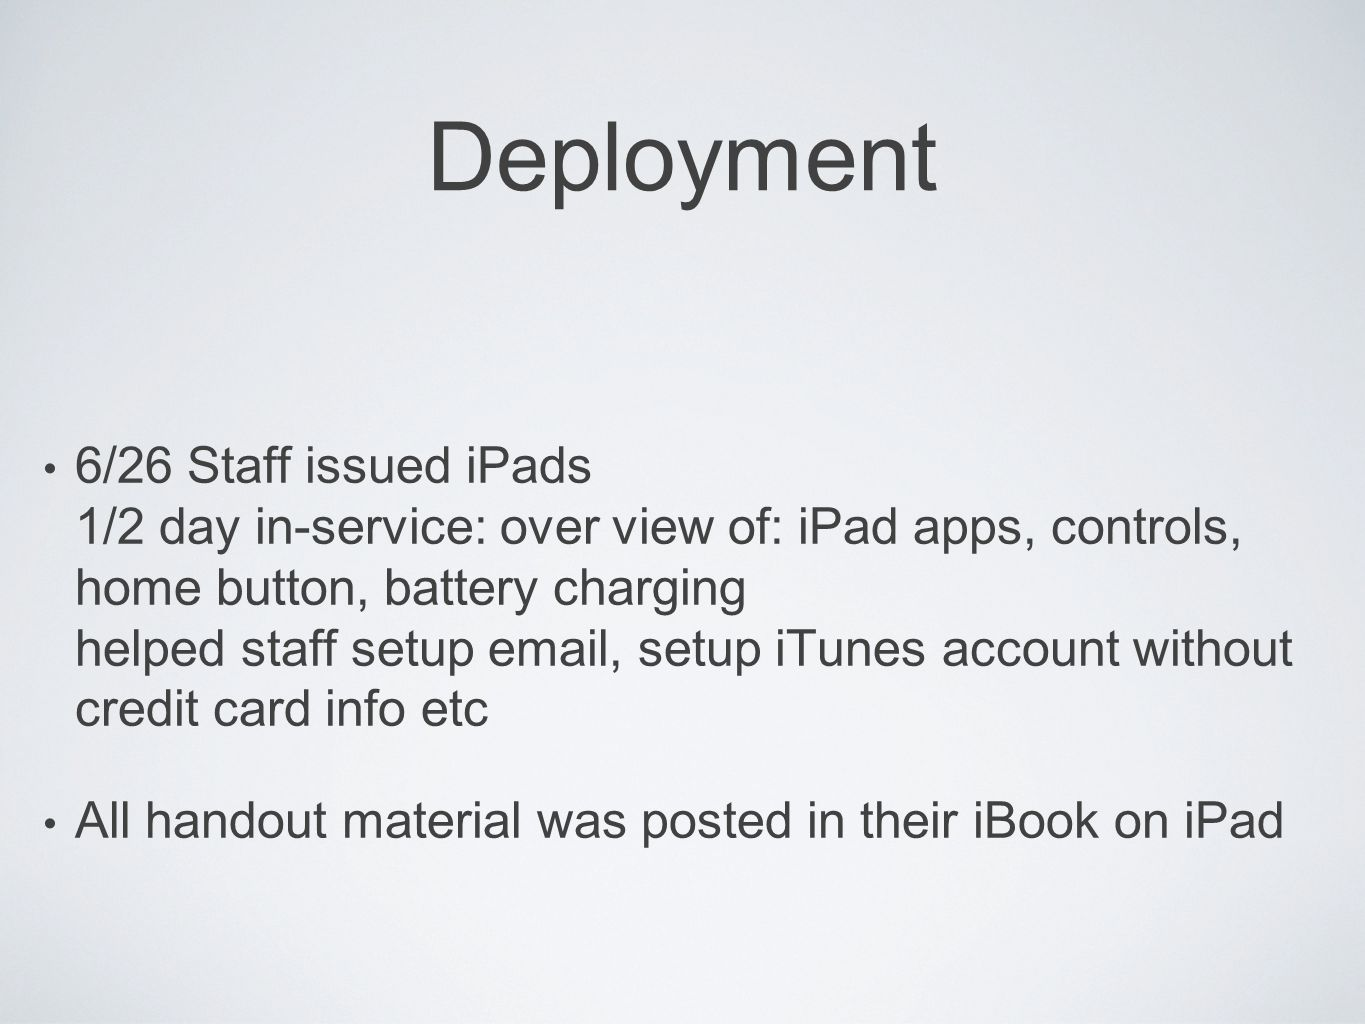 Deployment 6/26 Staff issued iPads 1/2 day in-service: over view of: iPad apps, controls, home button, battery charging helped staff setup email, setup iTunes account without credit card info etc All handout material was posted in their iBook on iPad